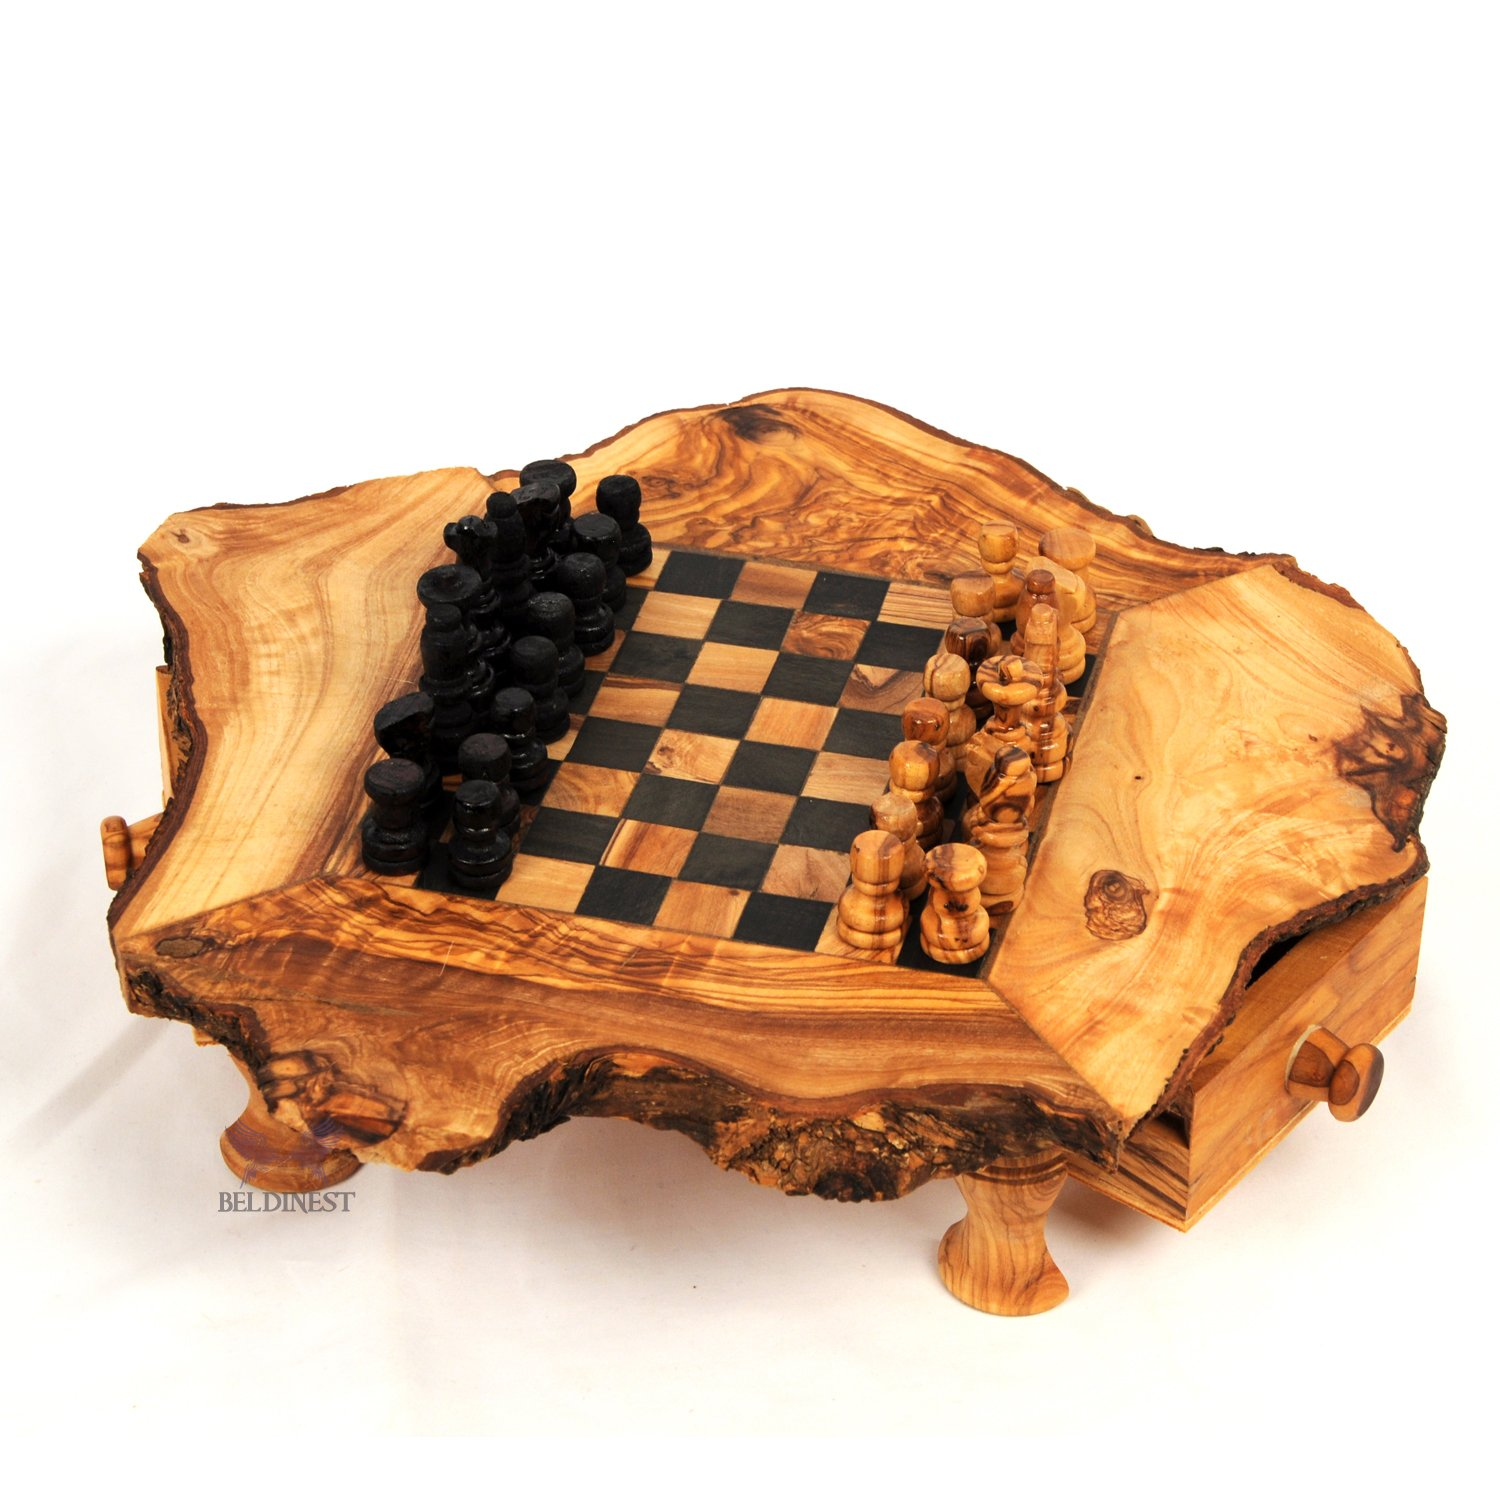 BeldiNest Gift Idea! Olive Wood Rustic Chess Set, Handcrafted Chess Game Board S6x6 BN-CS1-167B-16